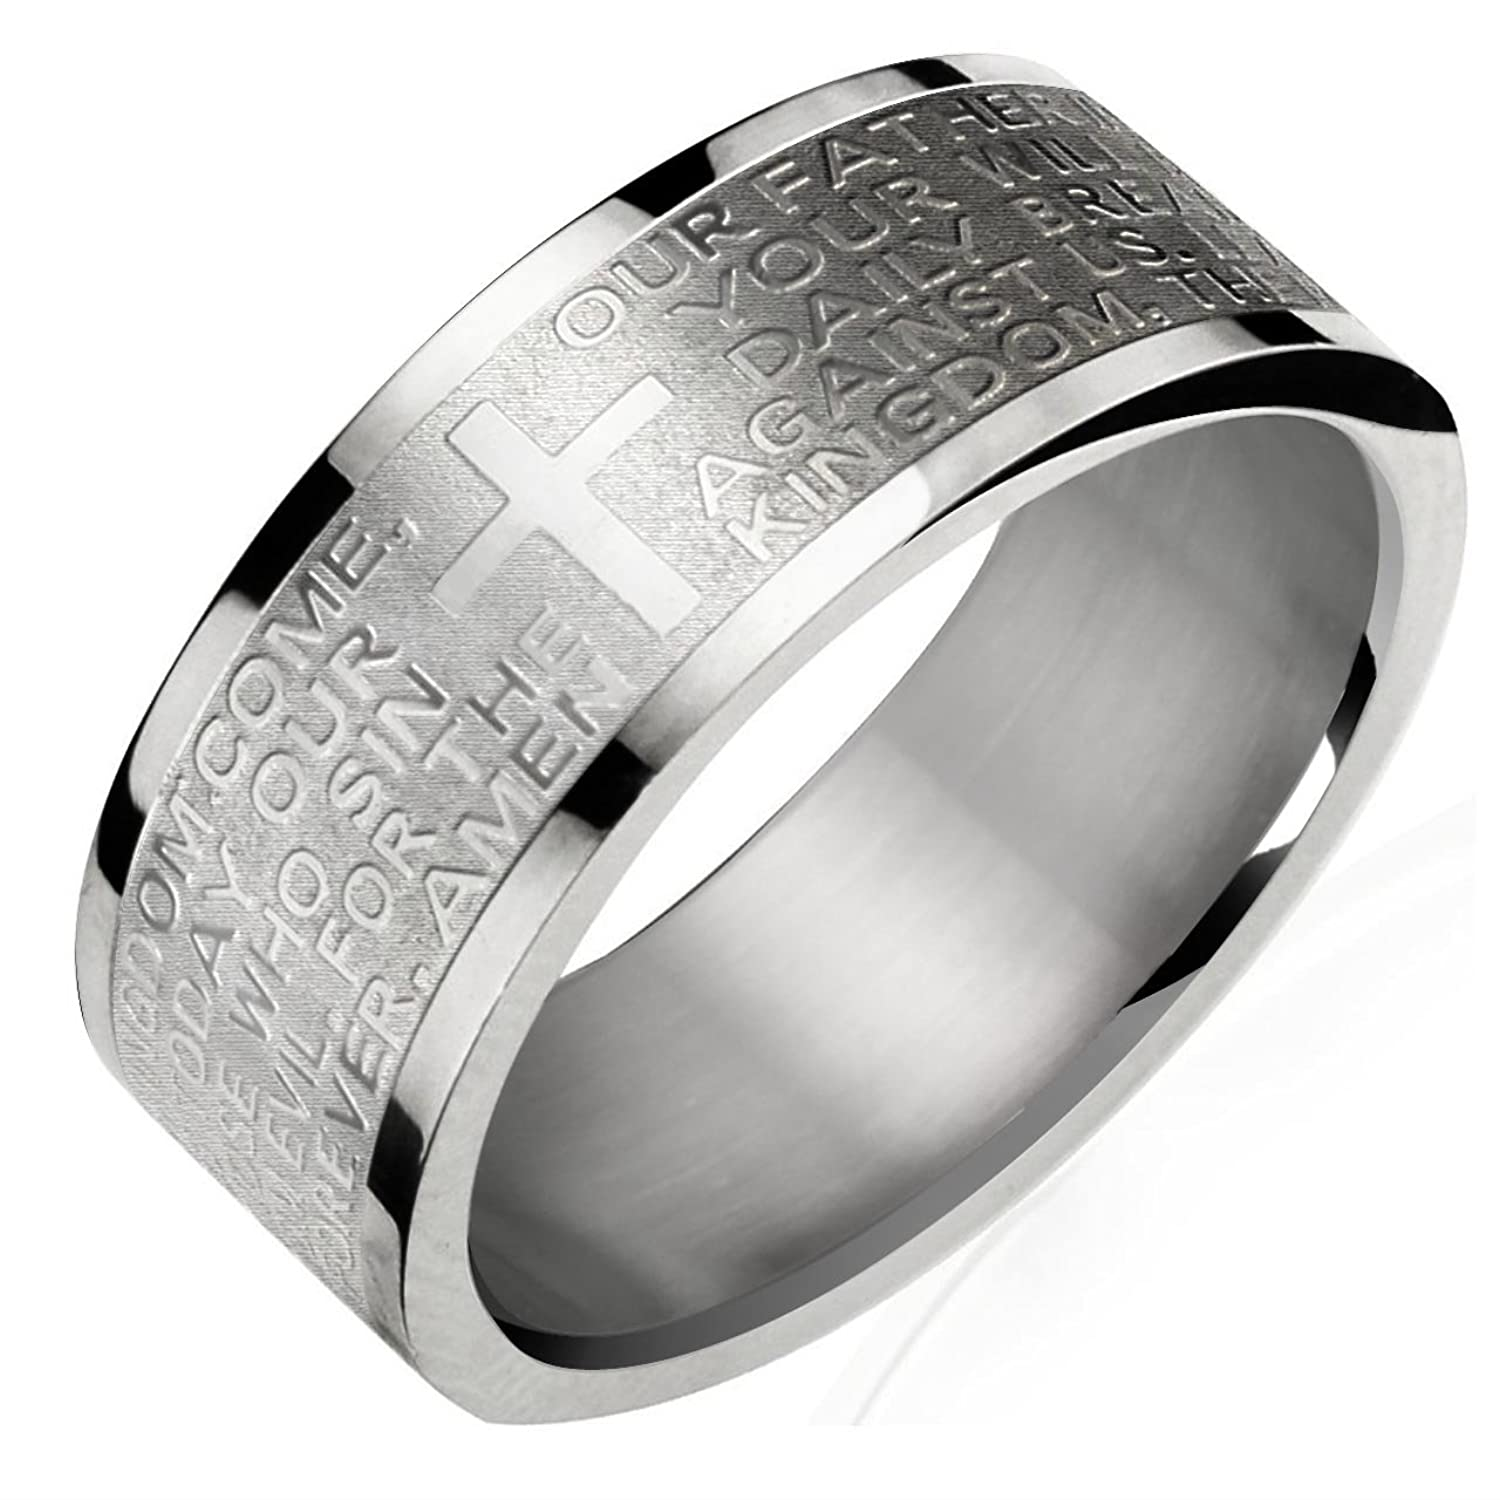 jewellery s silver amanda di ring mens men products